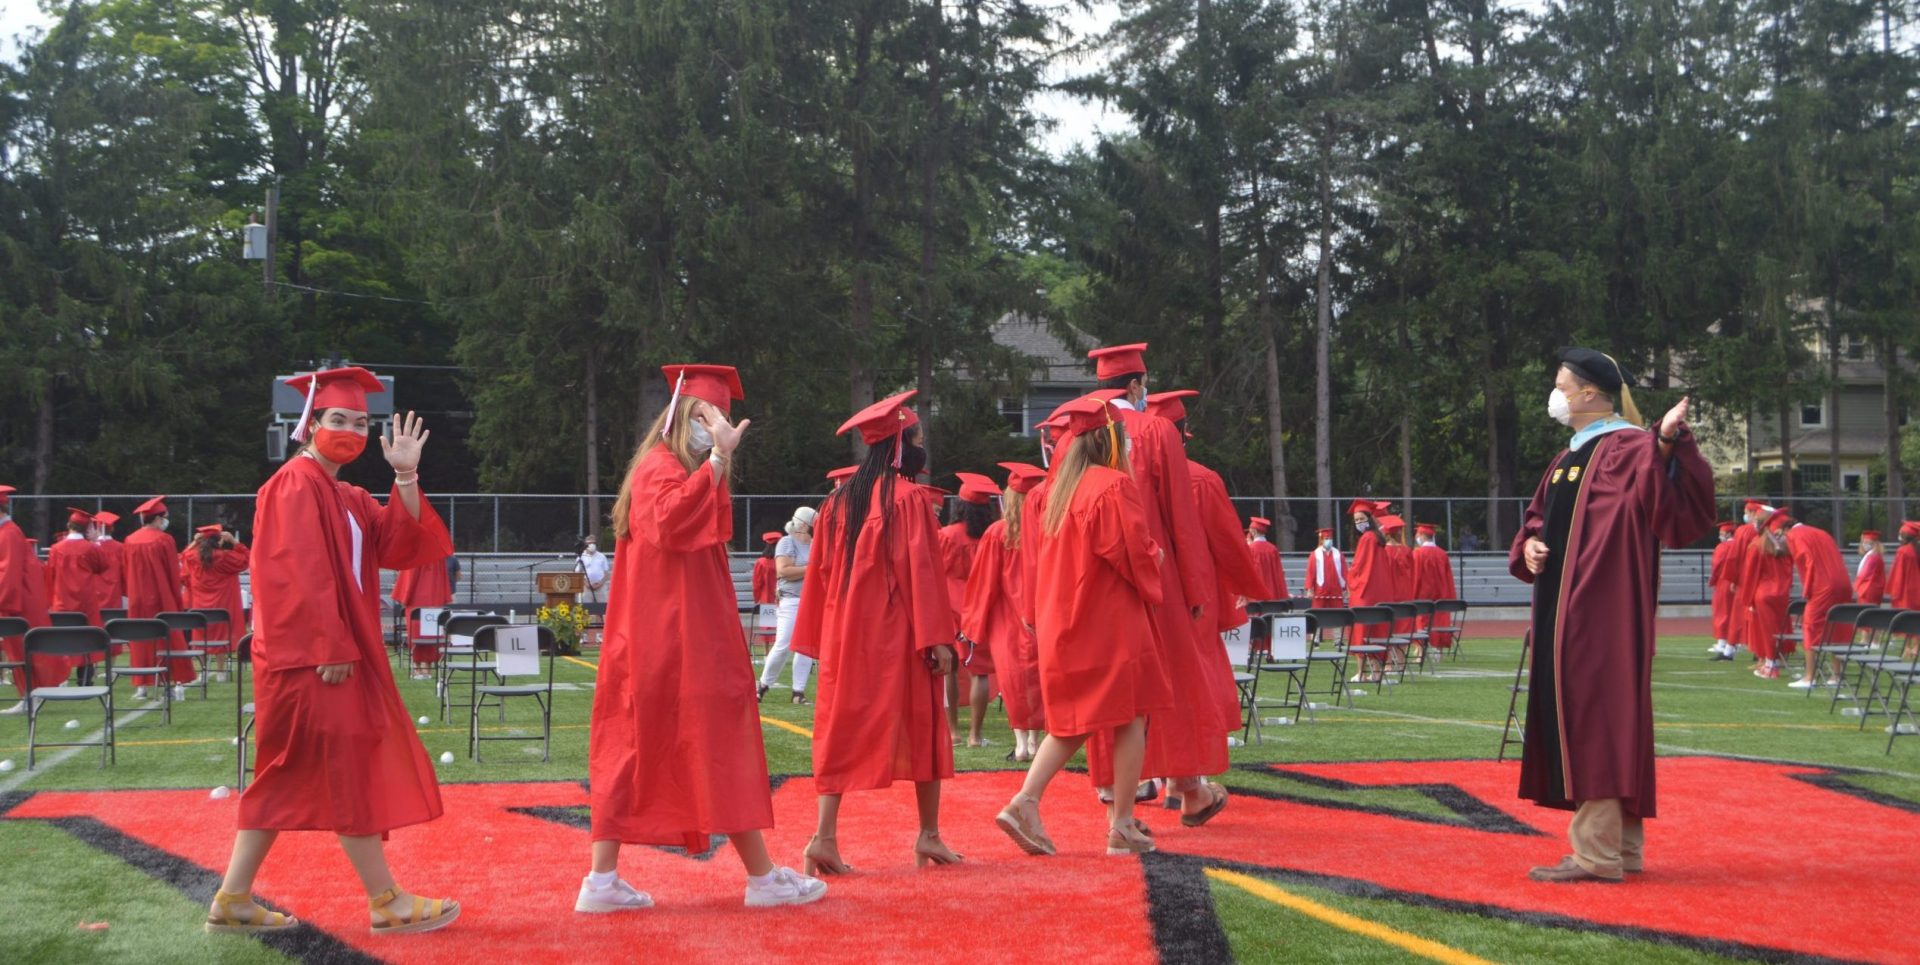 Wellesley High School Class Of 2020 Graduation Ceremony In Full The Swellesley Report